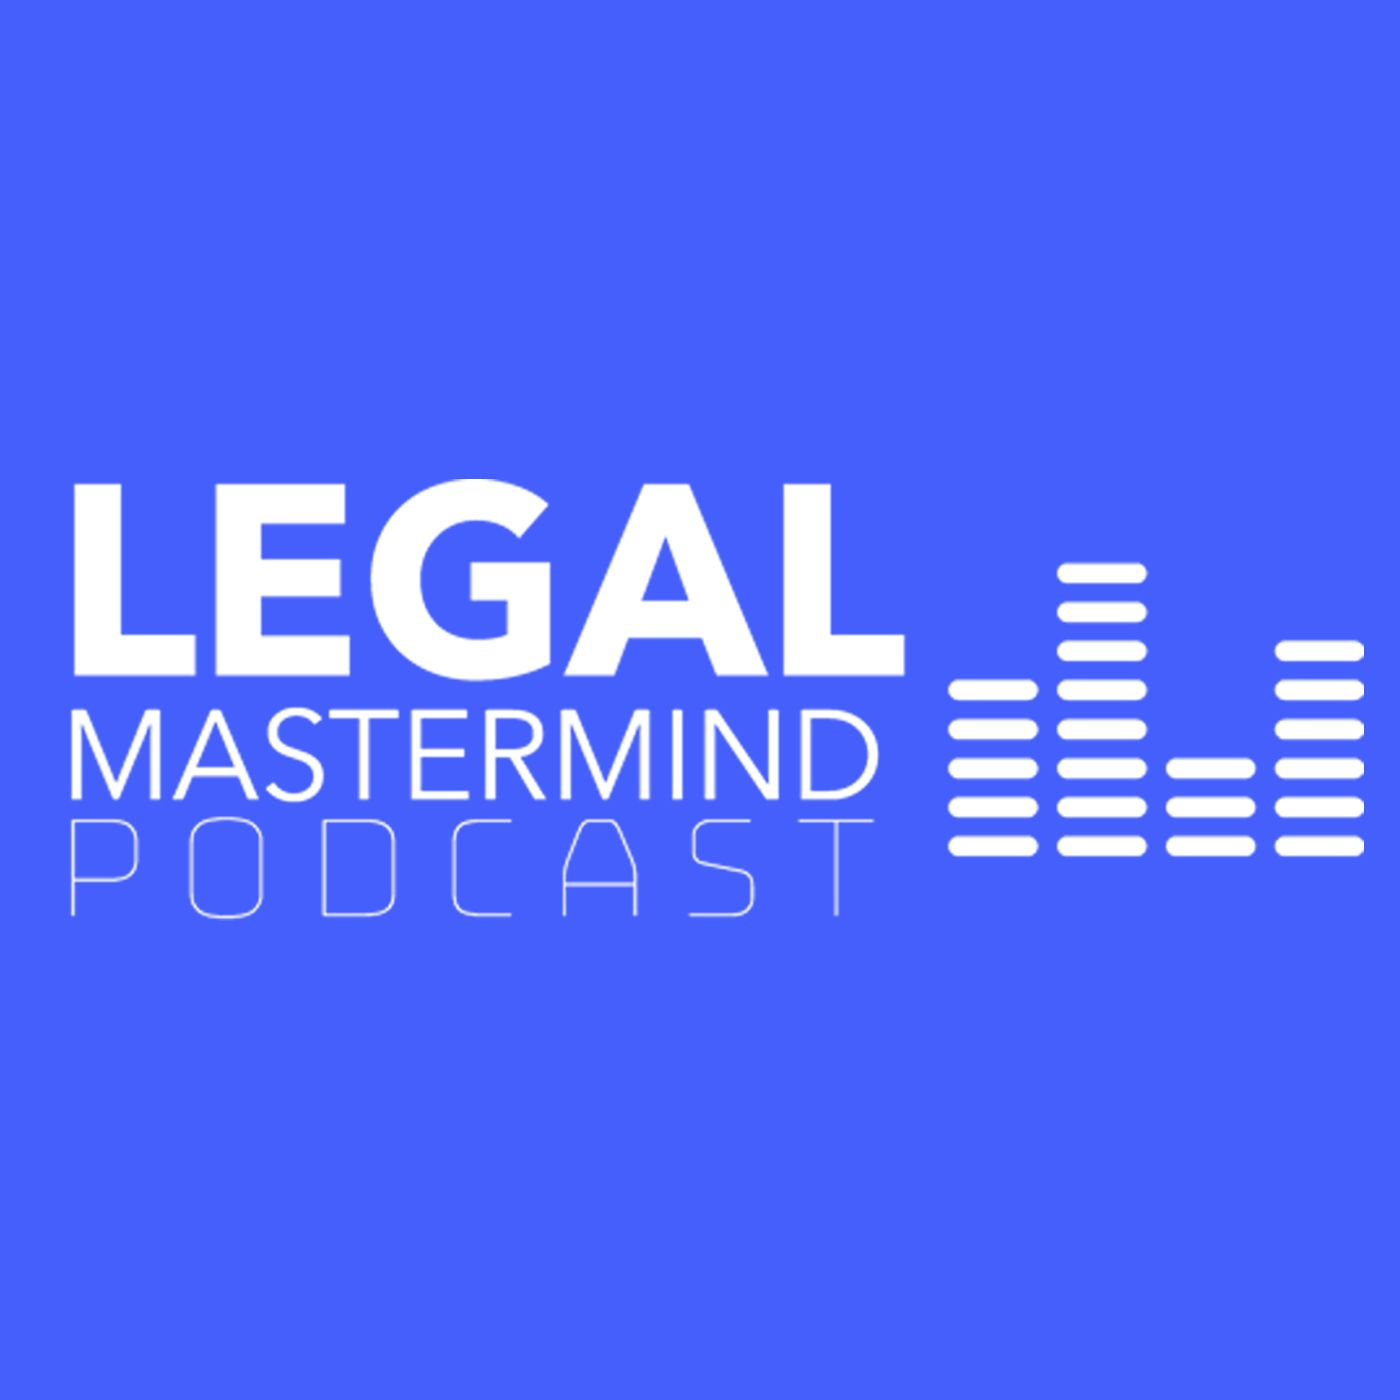 EP 61 - Michelle King - How to Pitch Yourself to the Media to Effectively Position Your Law Firm